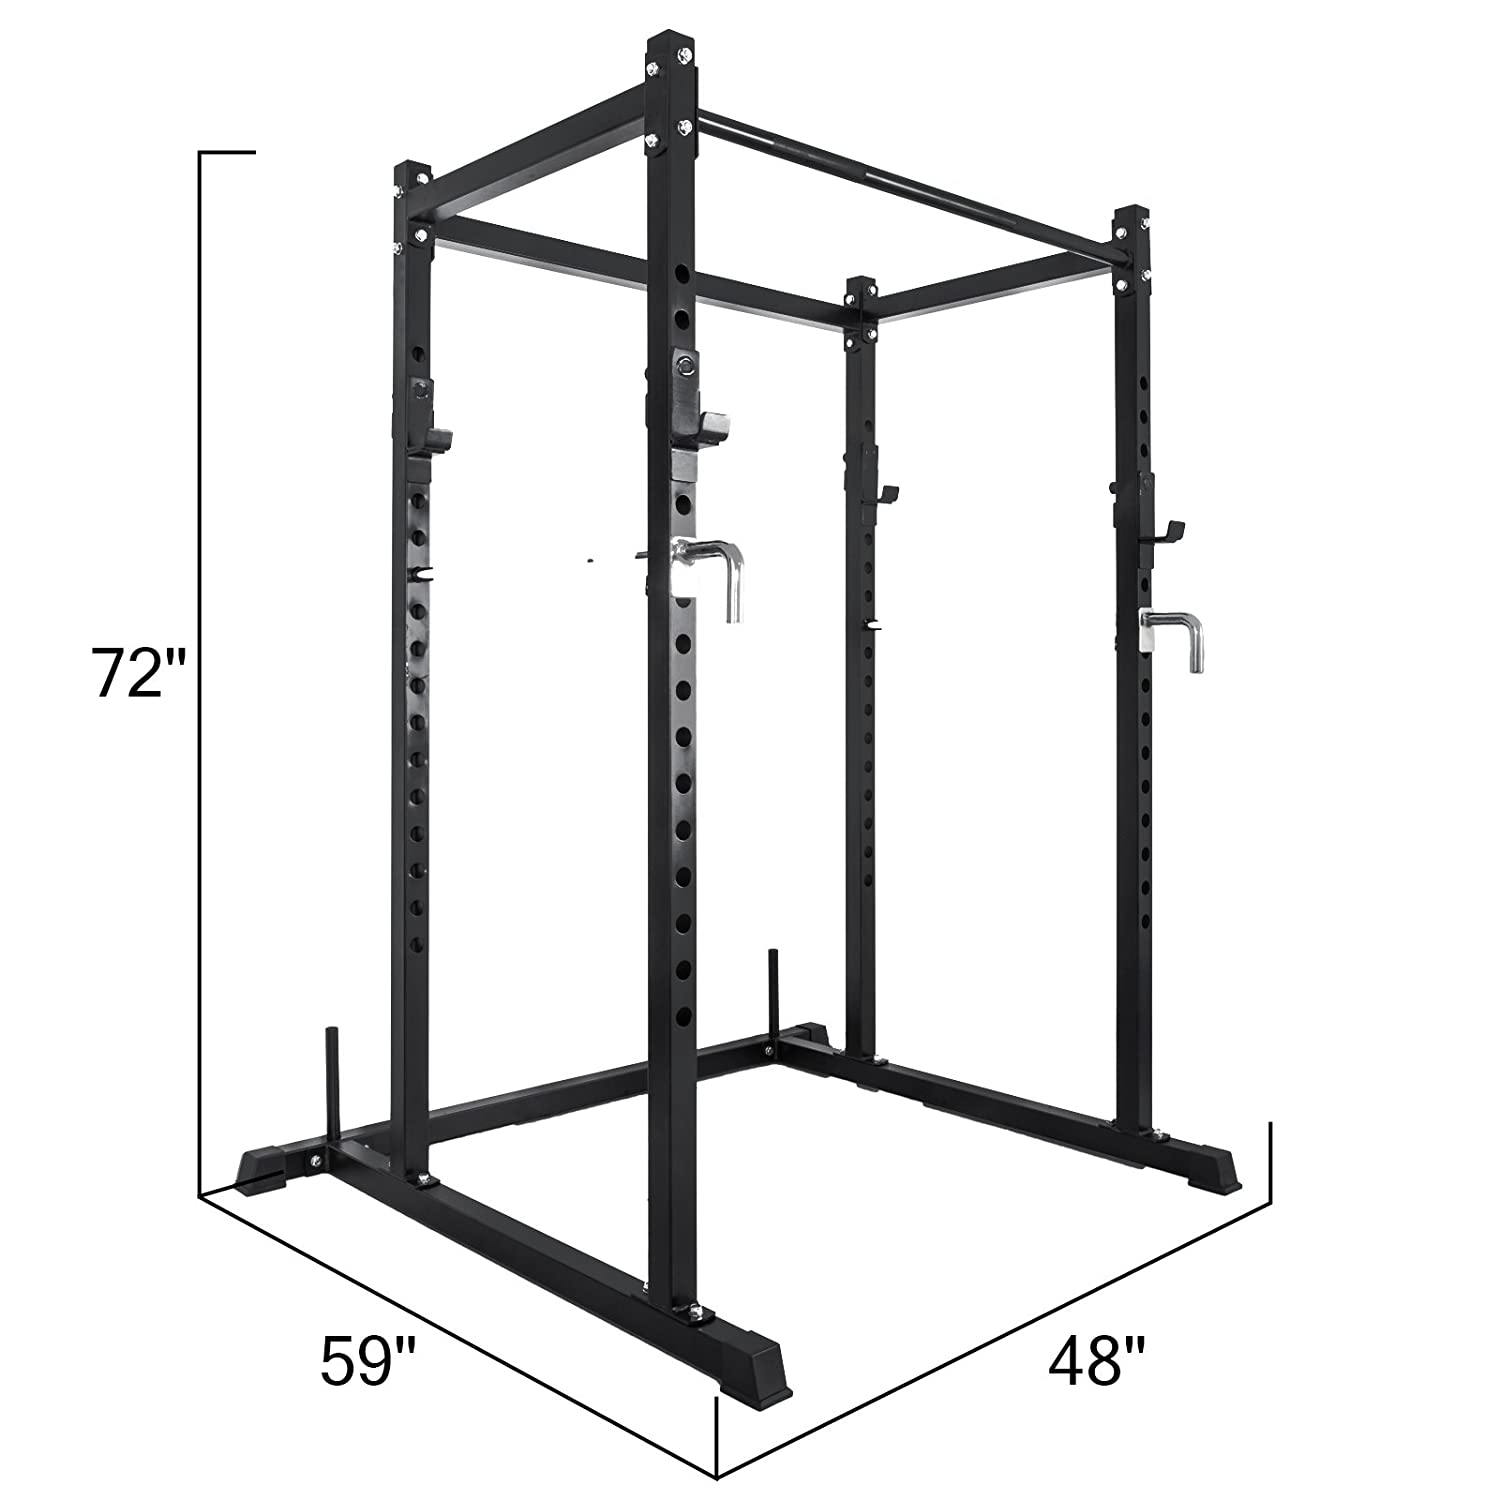 VEVOR Rack Cage System 71.5 Power Rack Solid Steel Full Cage Power Rack T-2 Power Rack Squat Cage Accommodate Different Heights and Exercises